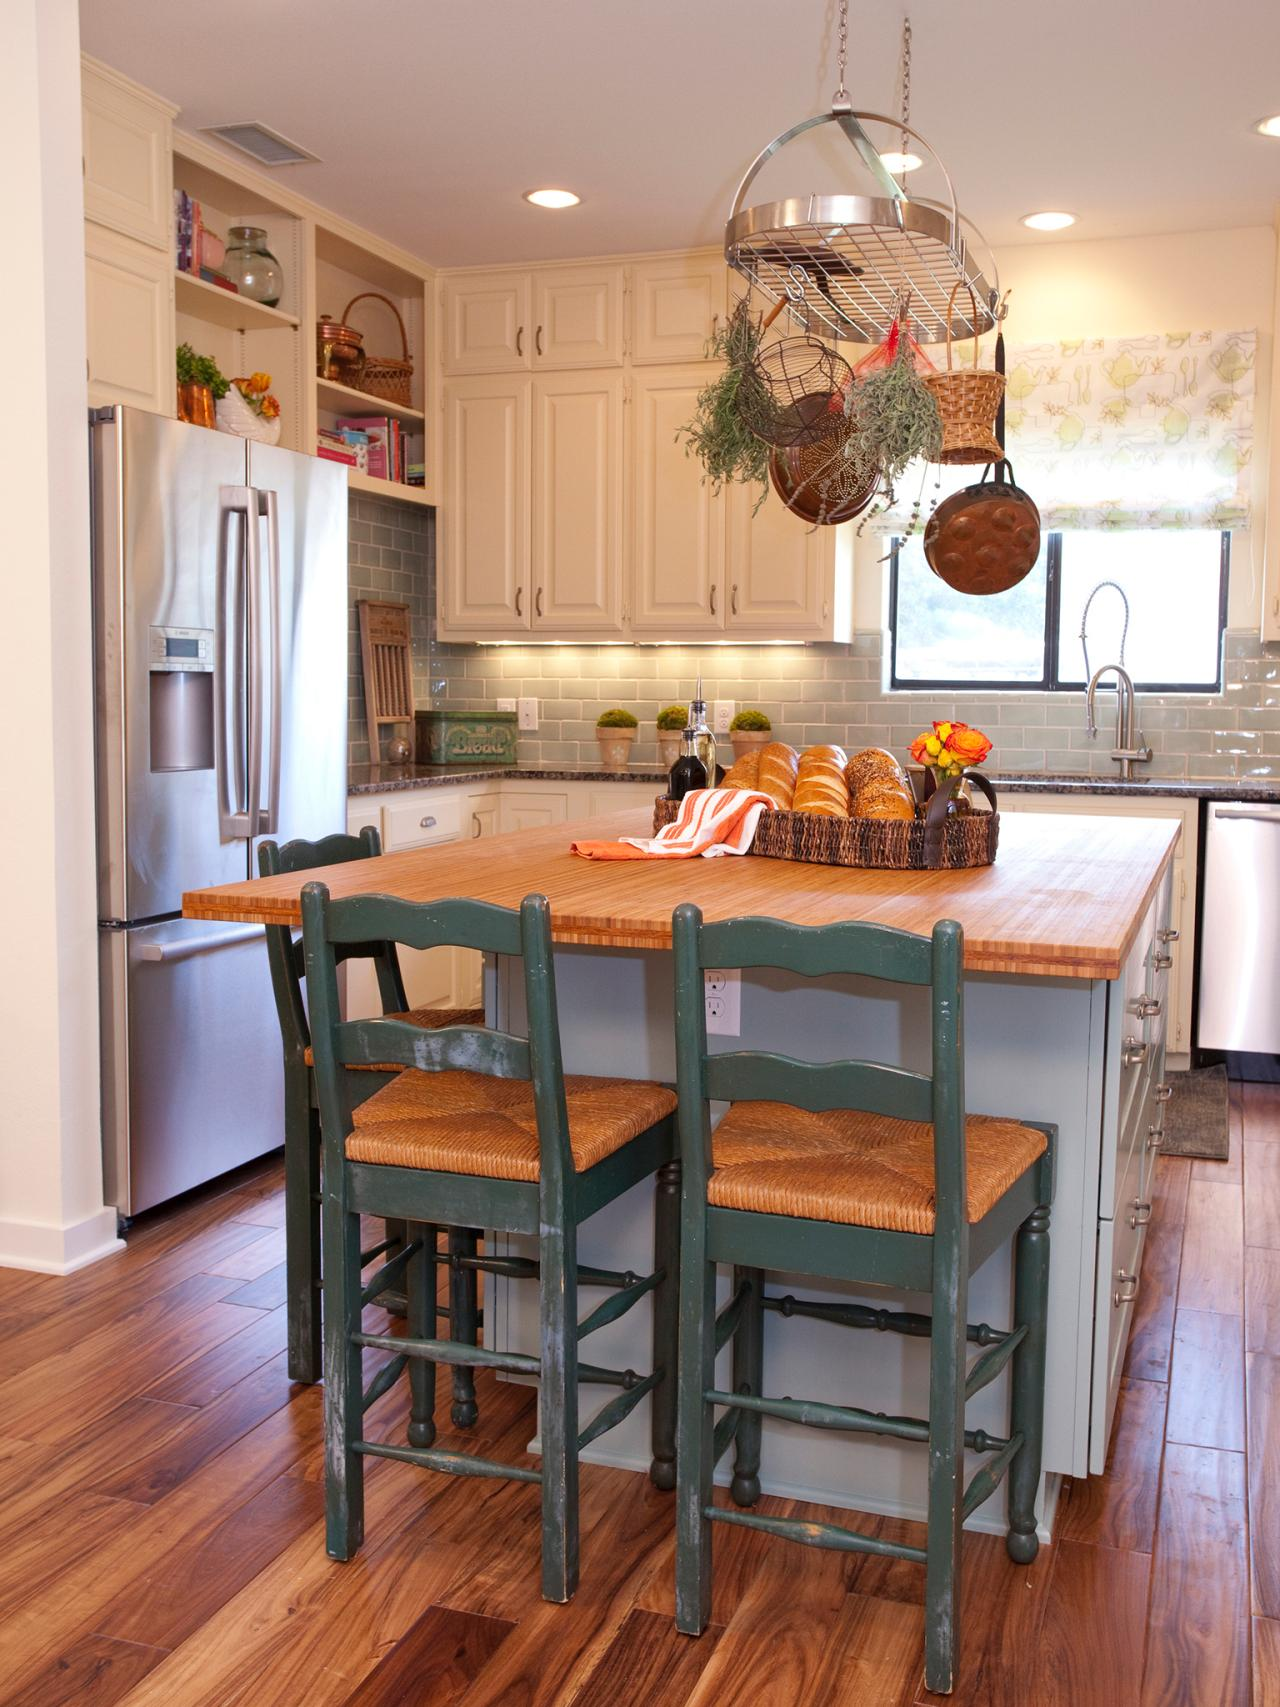 Island In Kitchen Small Kitchen Island Ideas Pictures Tips From Hgtv Hgtv